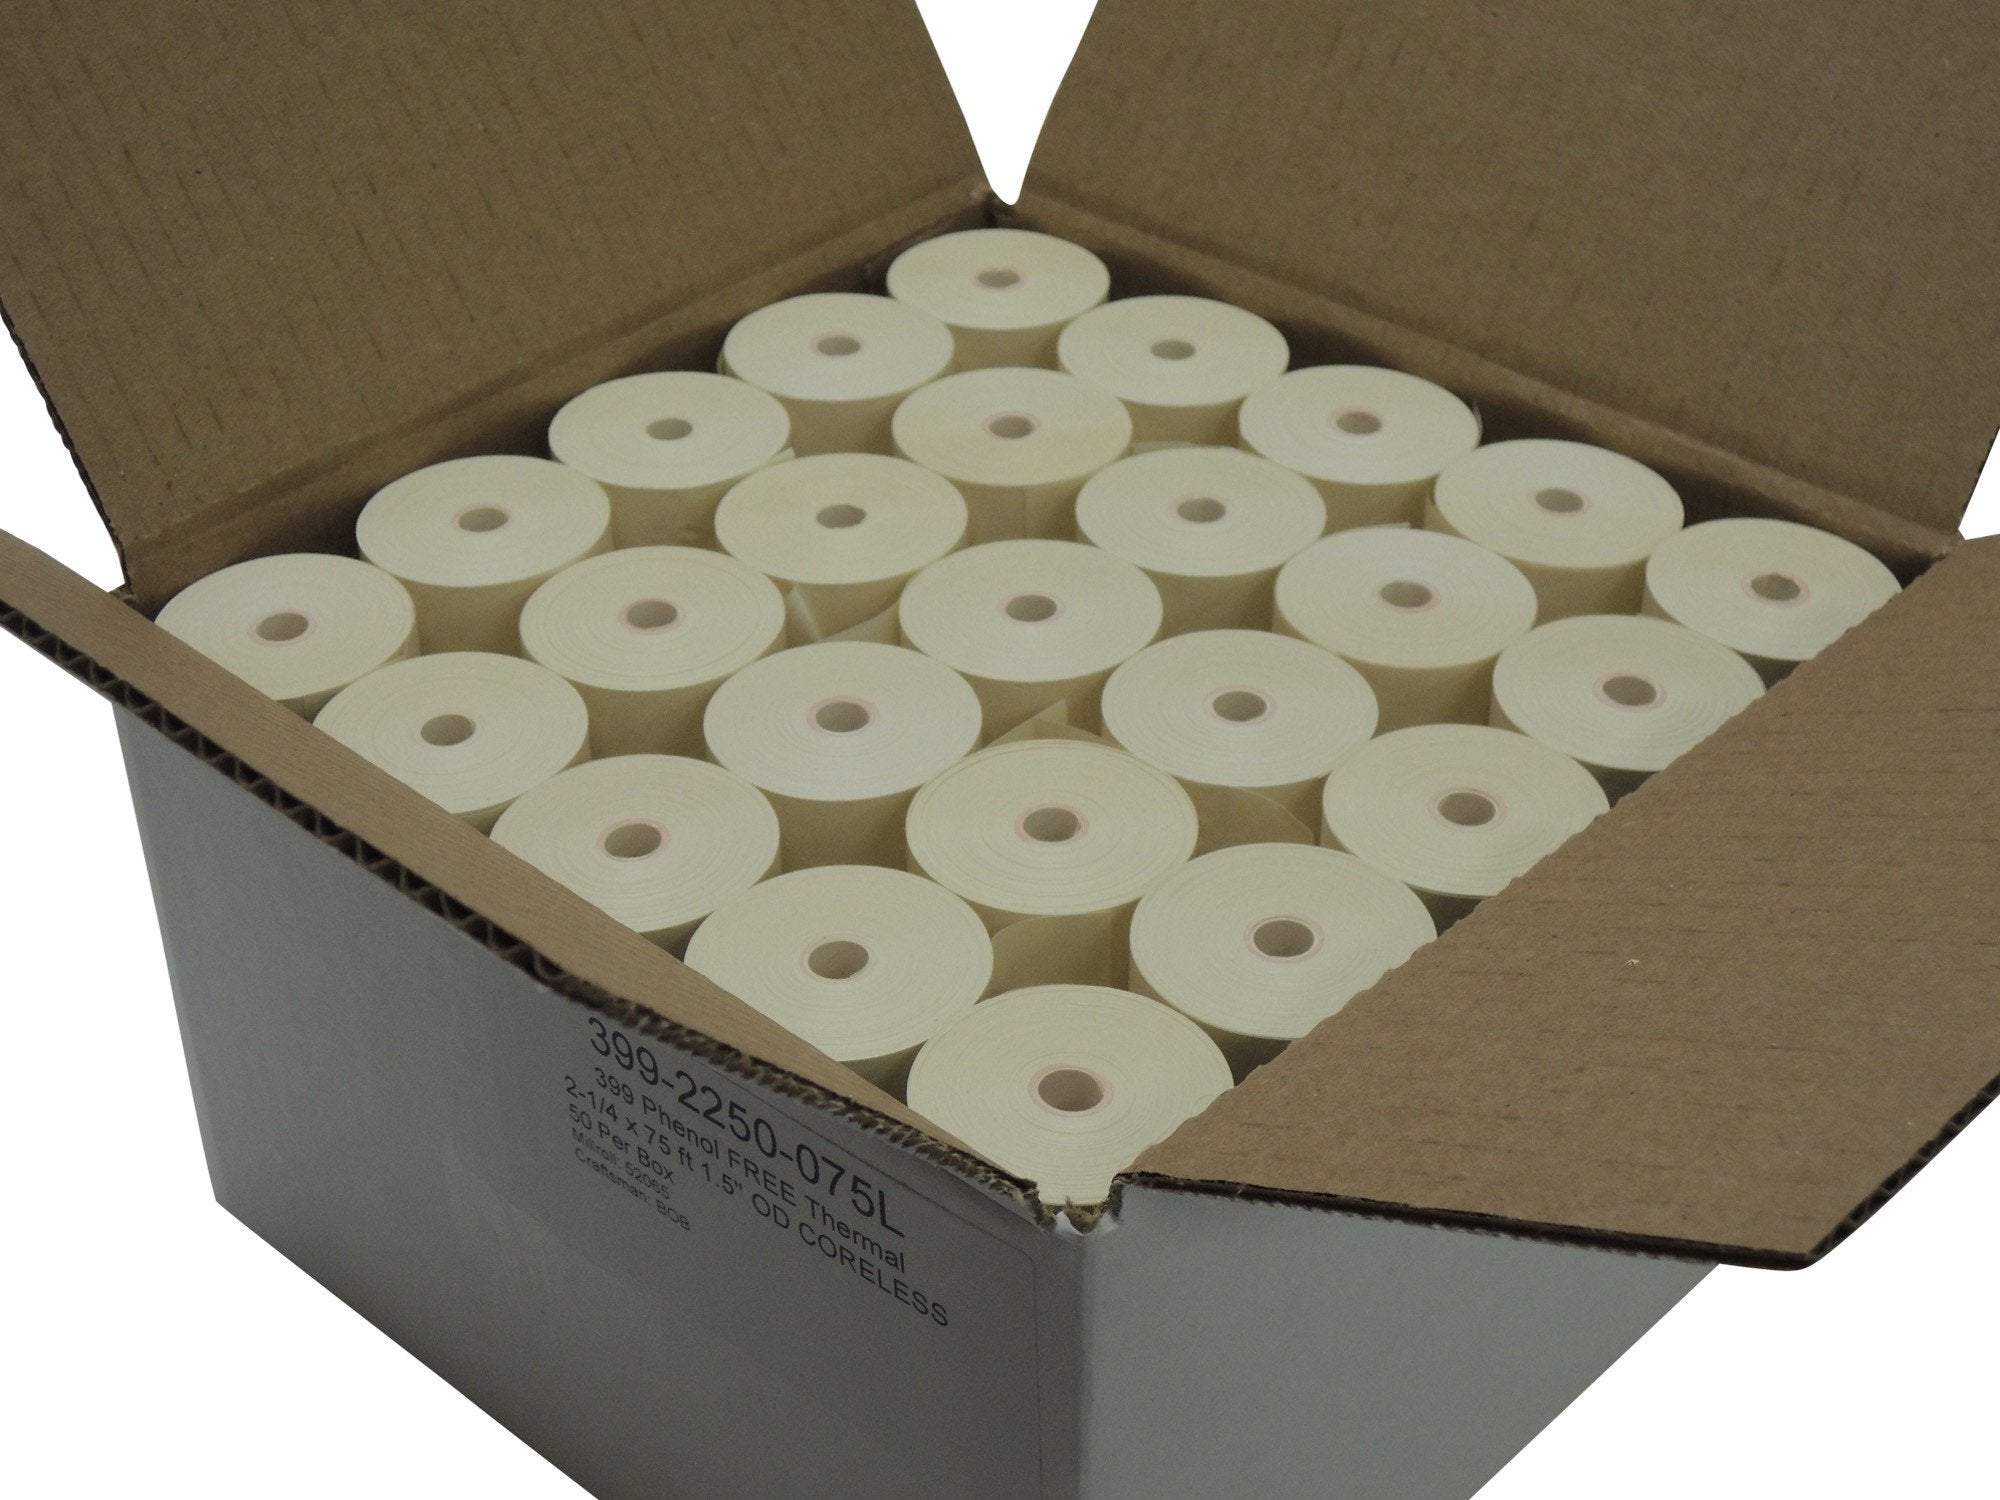 "Phenol Free Thermal Paper 2 1/4"" x 75 feet, 1.5"" / 38mm diameter, CORELESS"